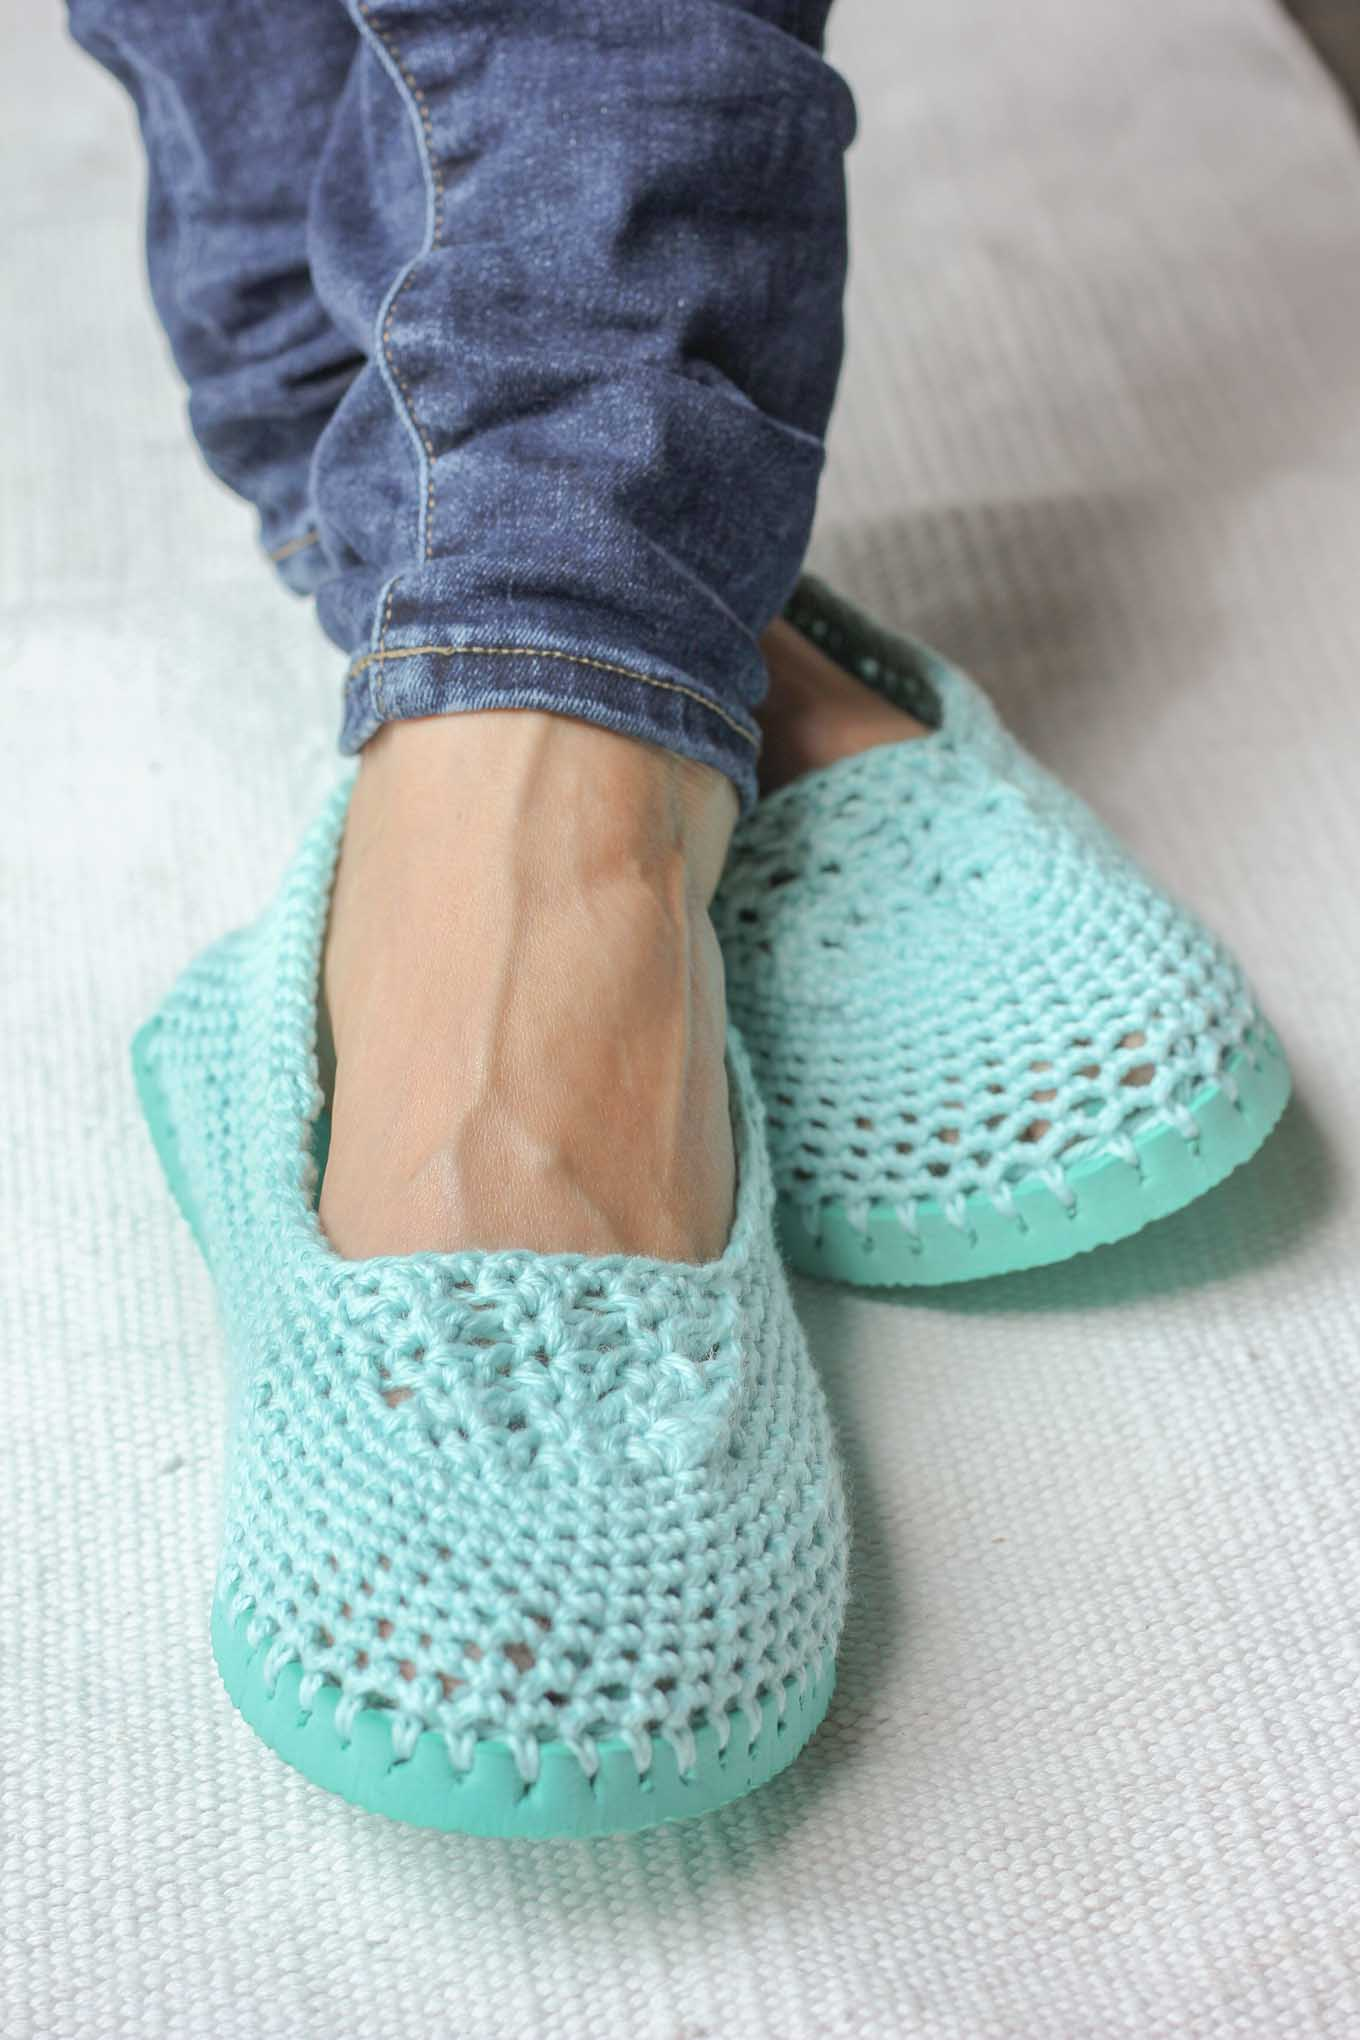 Crochet Shoes make pretty little boots